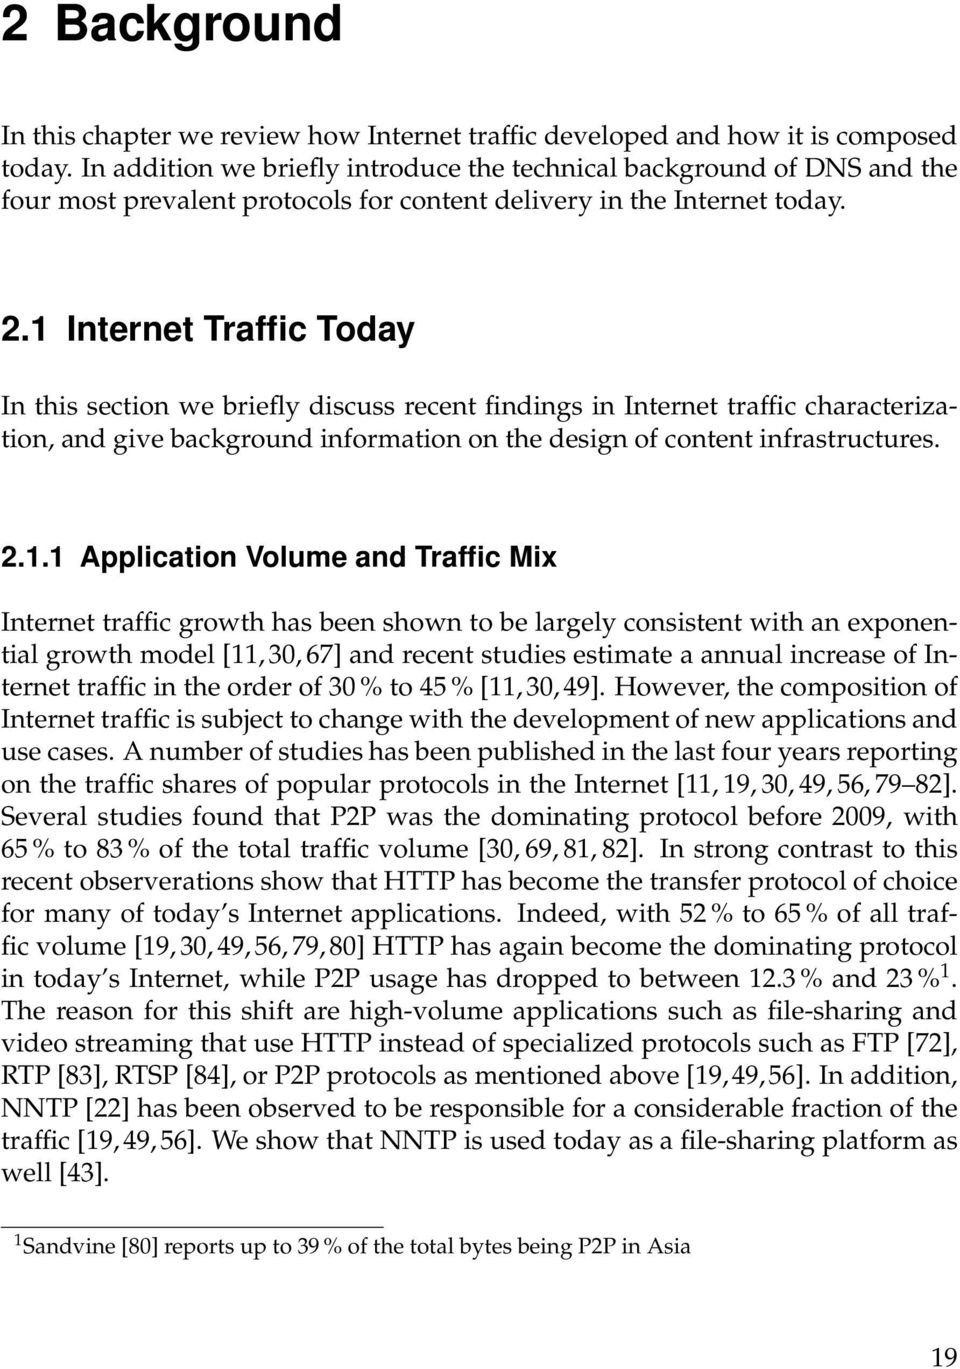 1 Internet Traffic Today In this section we briefly discuss recent findings in Internet traffic characterization, and give background information on the design of content infrastructures. 2.1.1